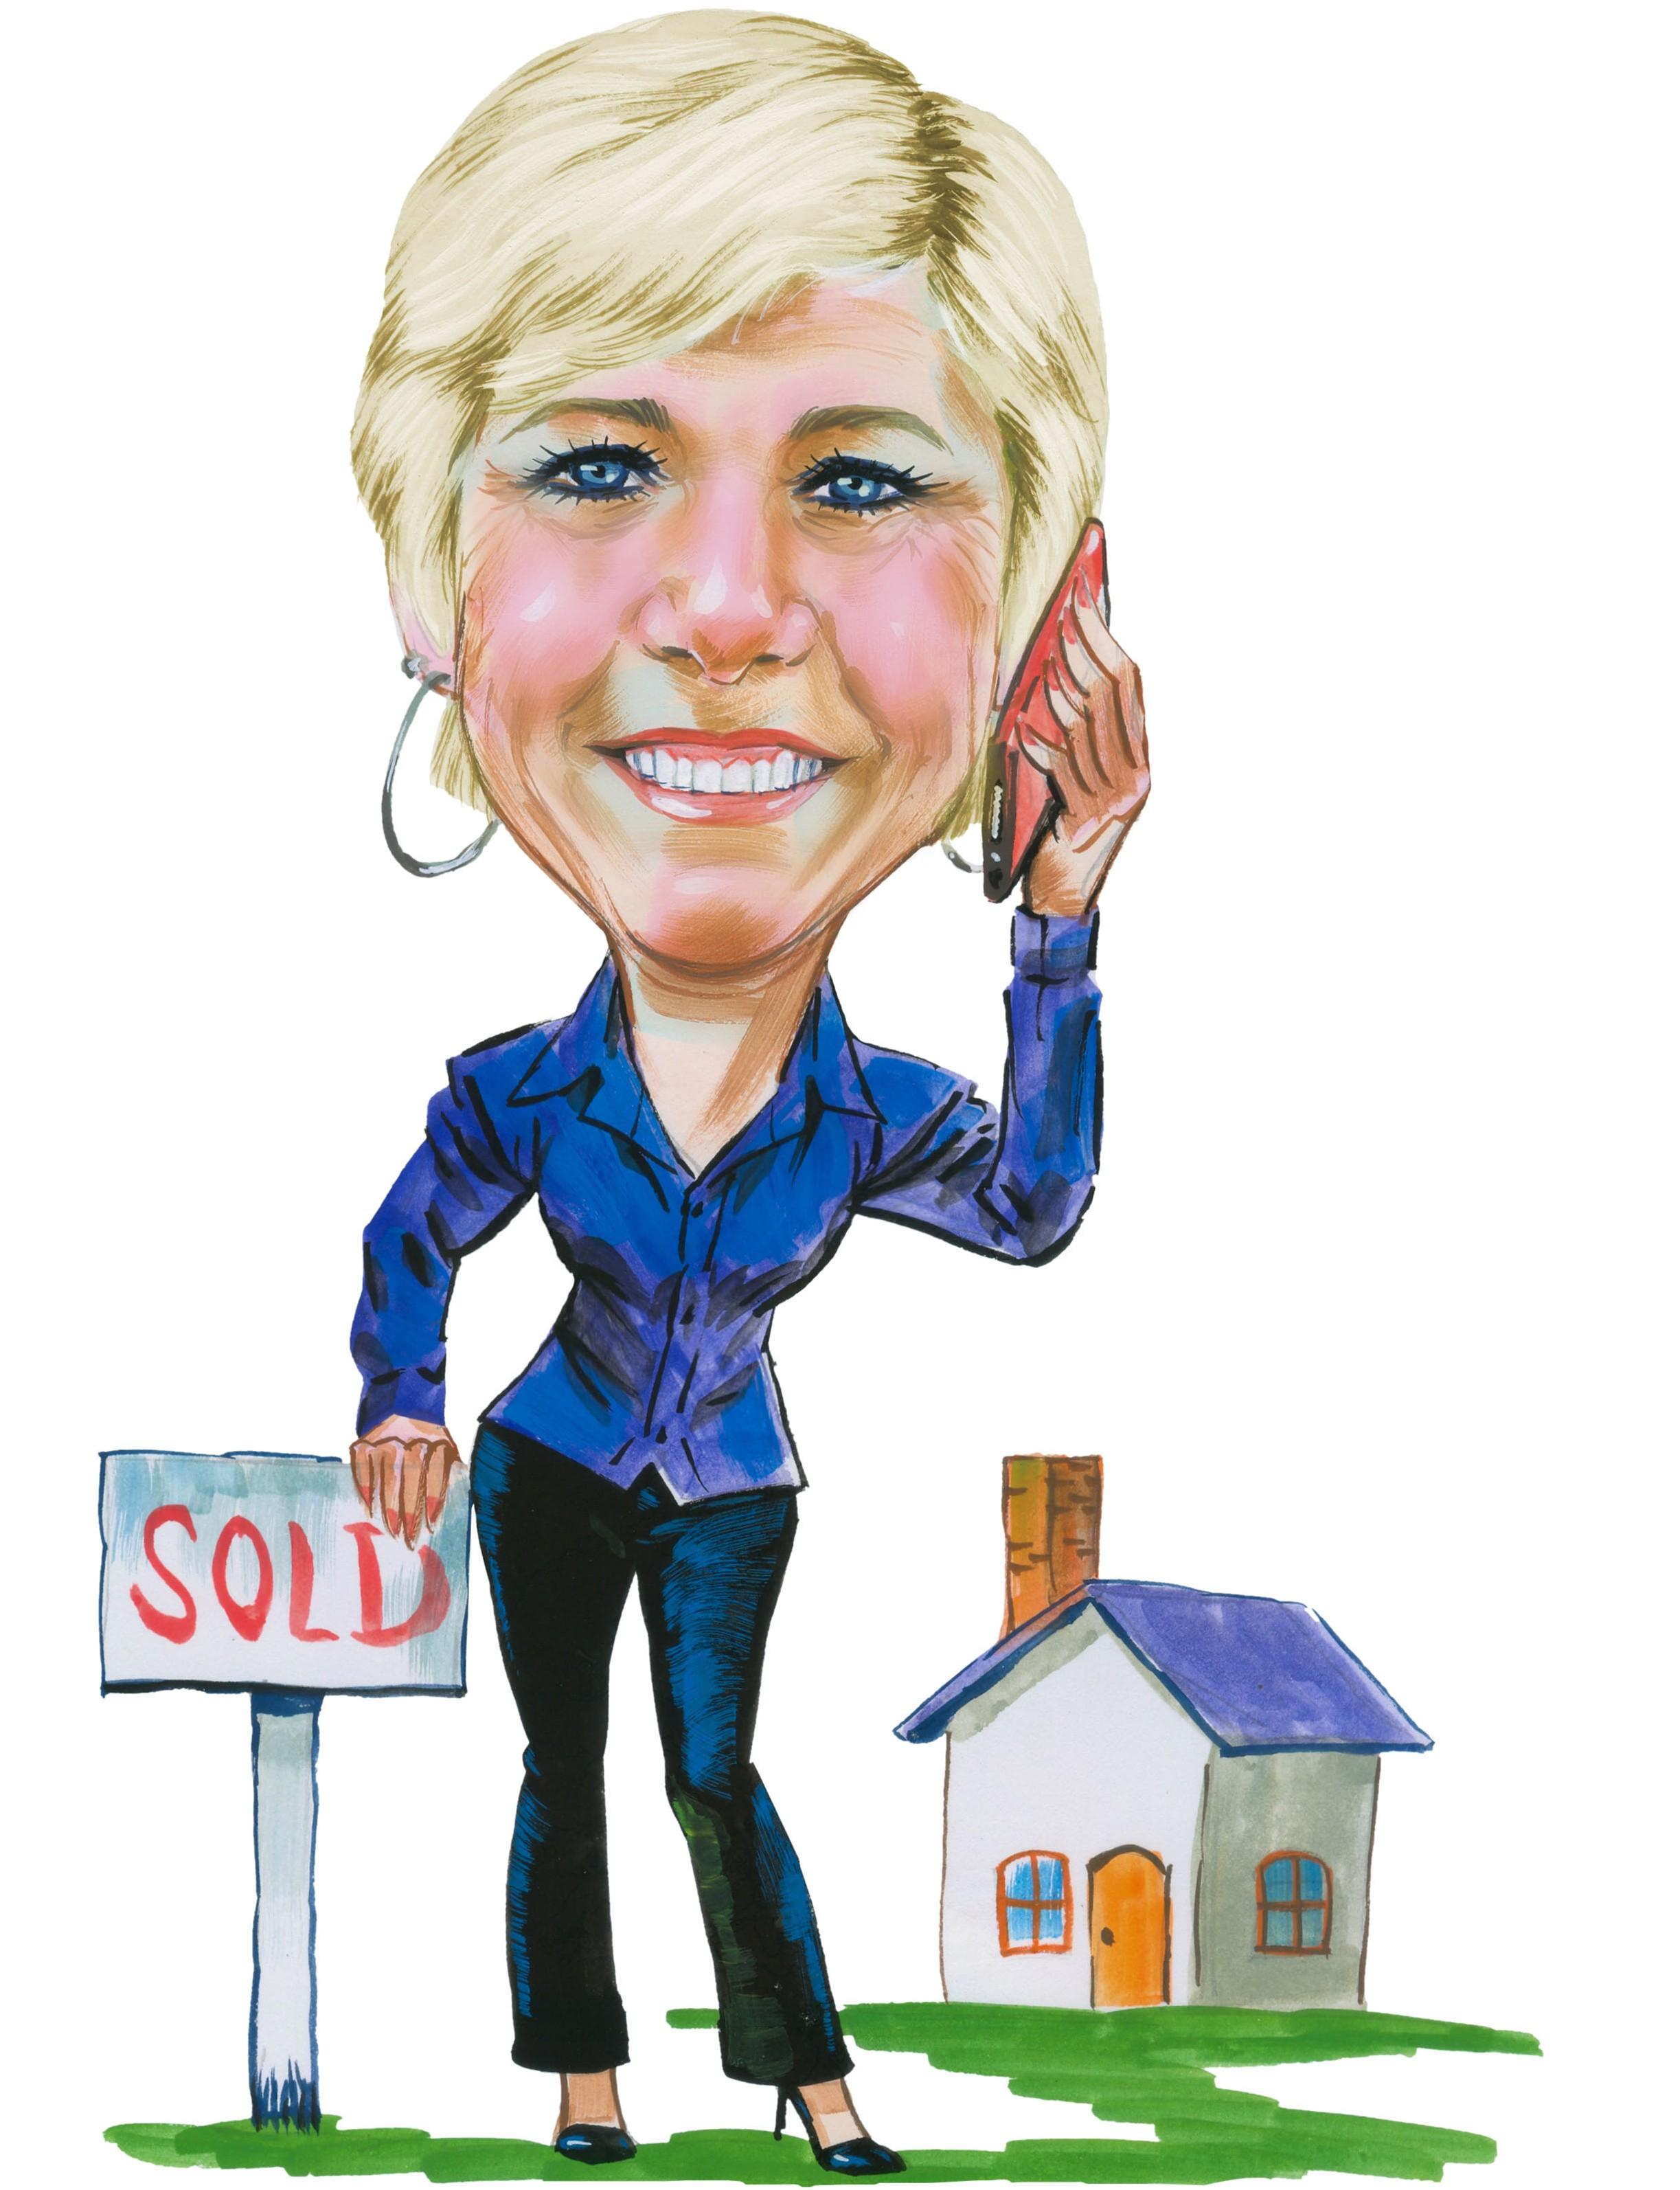 Melinda Jordan, RE/MAX Pinnacle Group Realtors,II